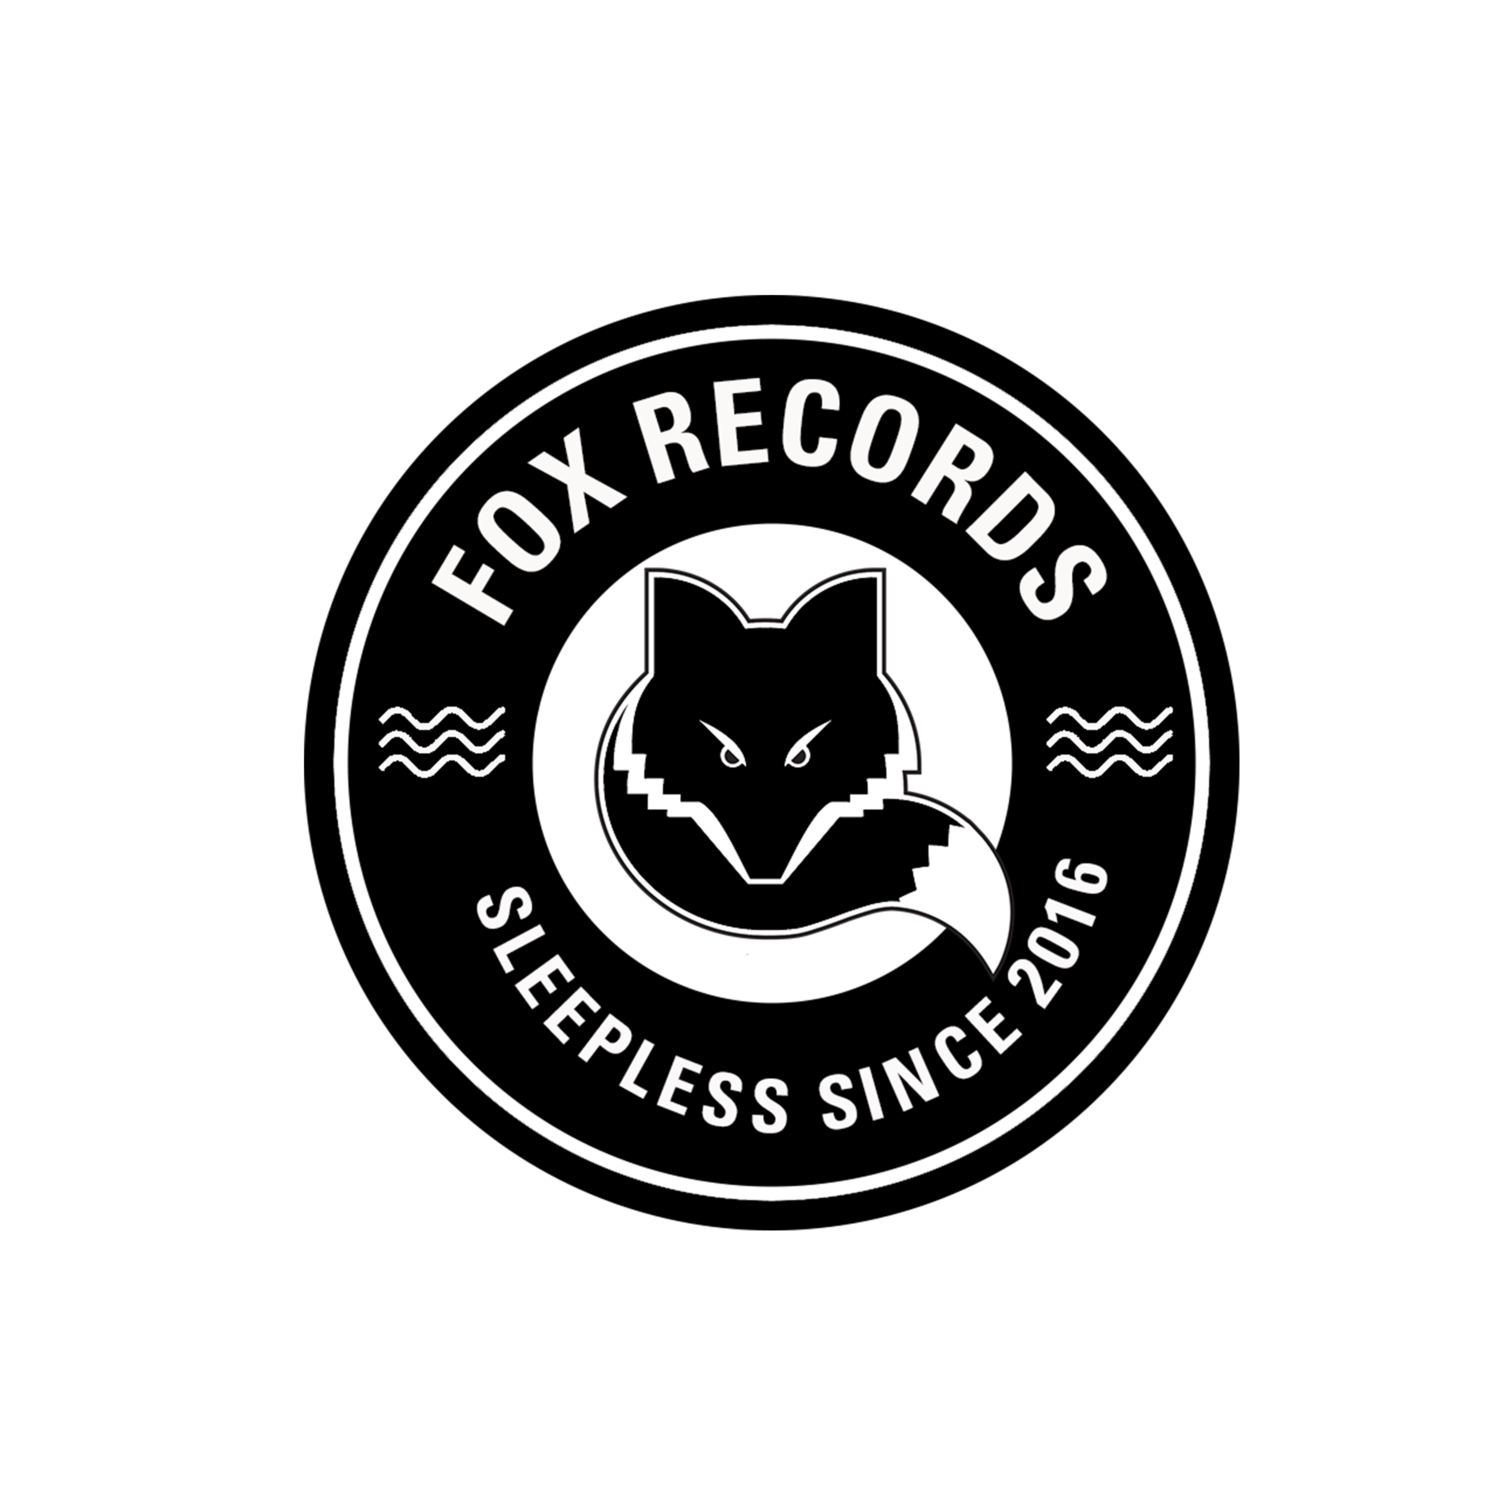 Fox Records